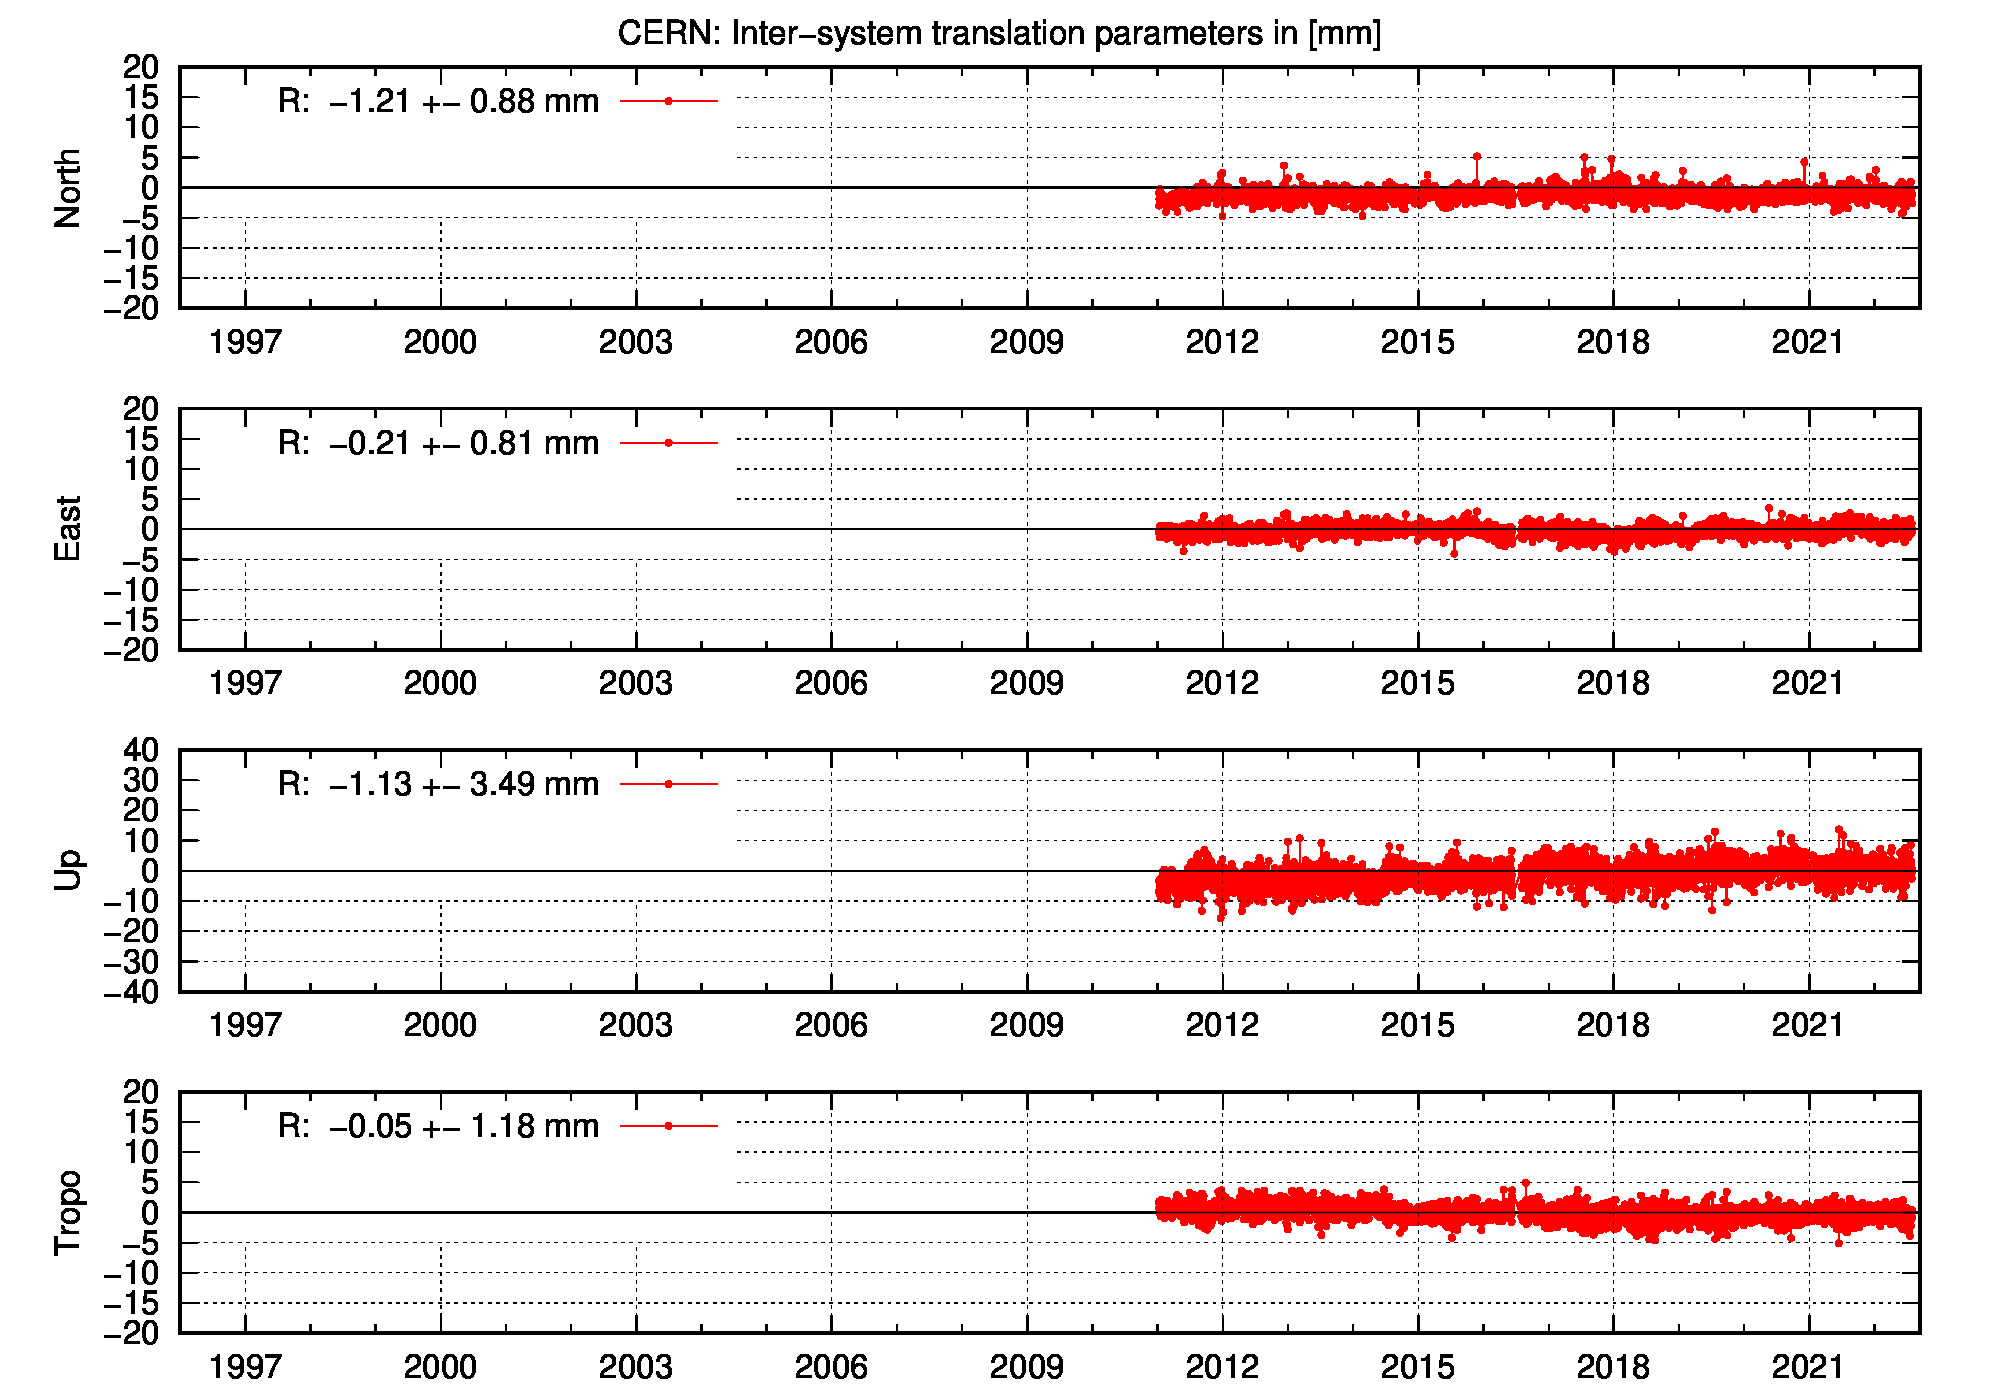 Long-term TRA time series of CERN